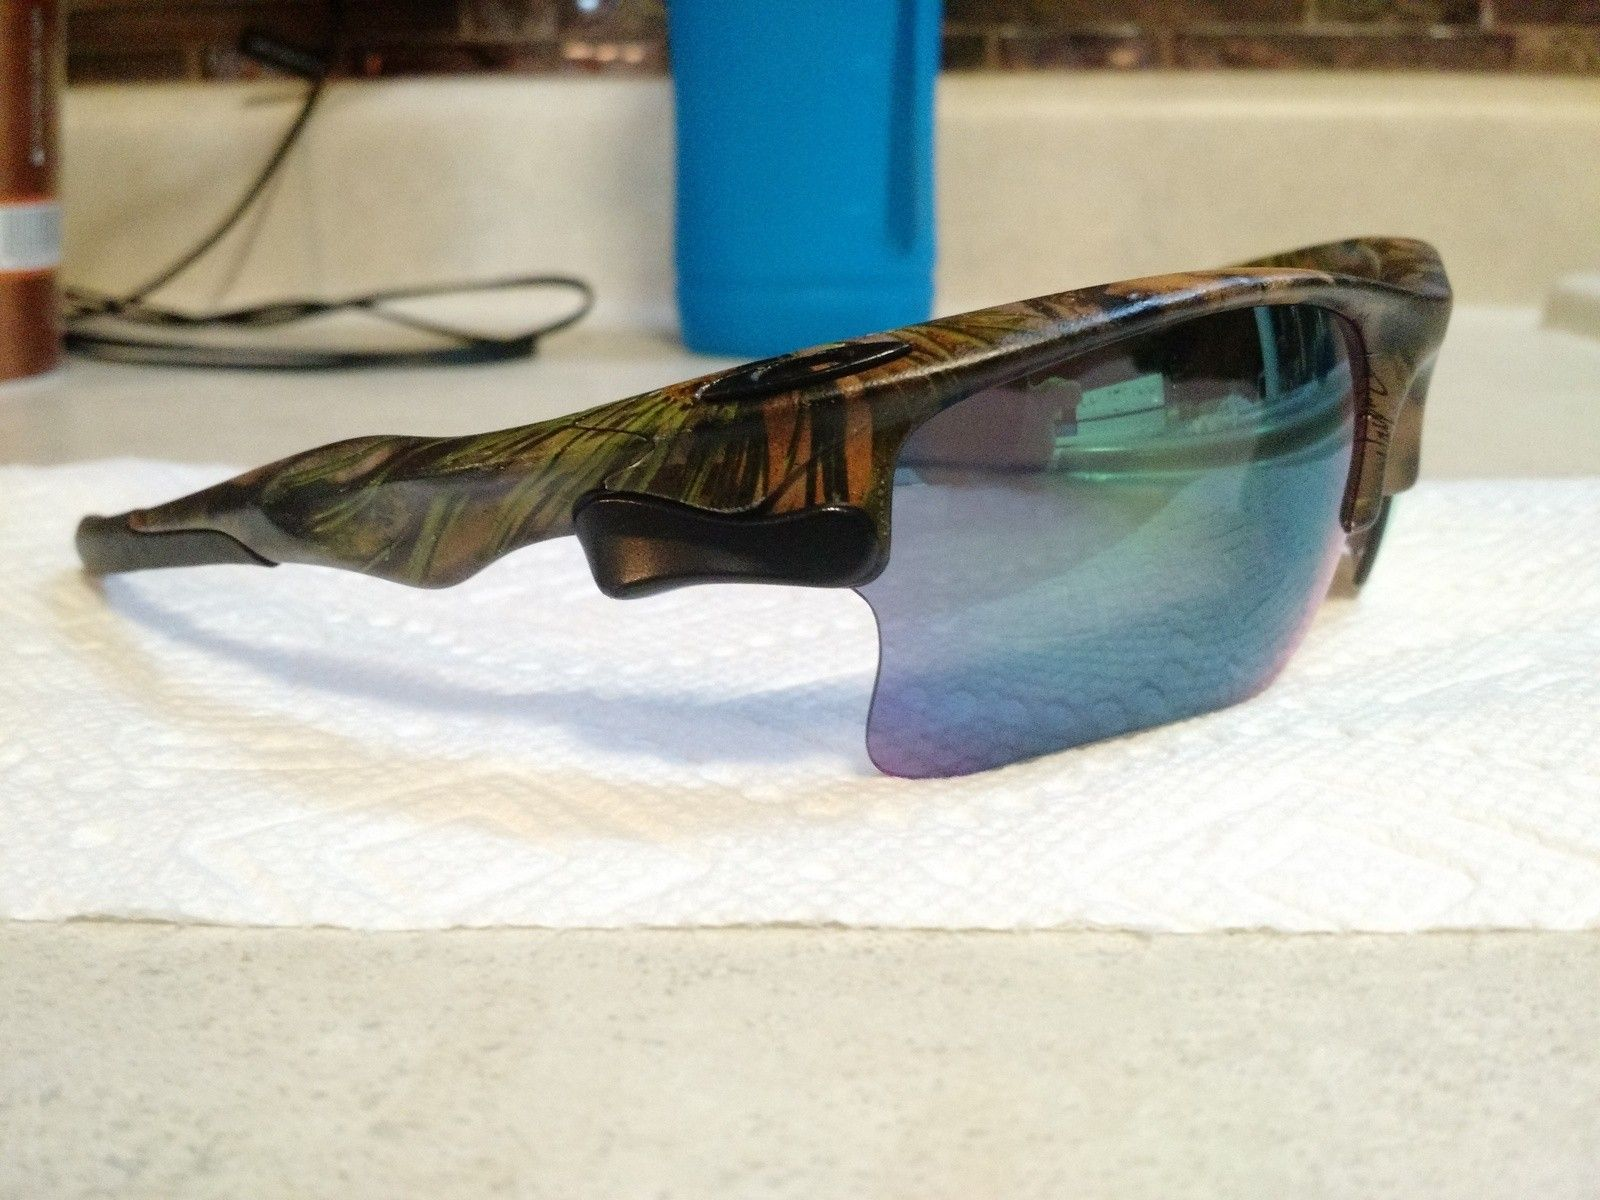 Fast Jacket Camo: Fire or Jade lenses? - IMG_20150905_151612010.jpg